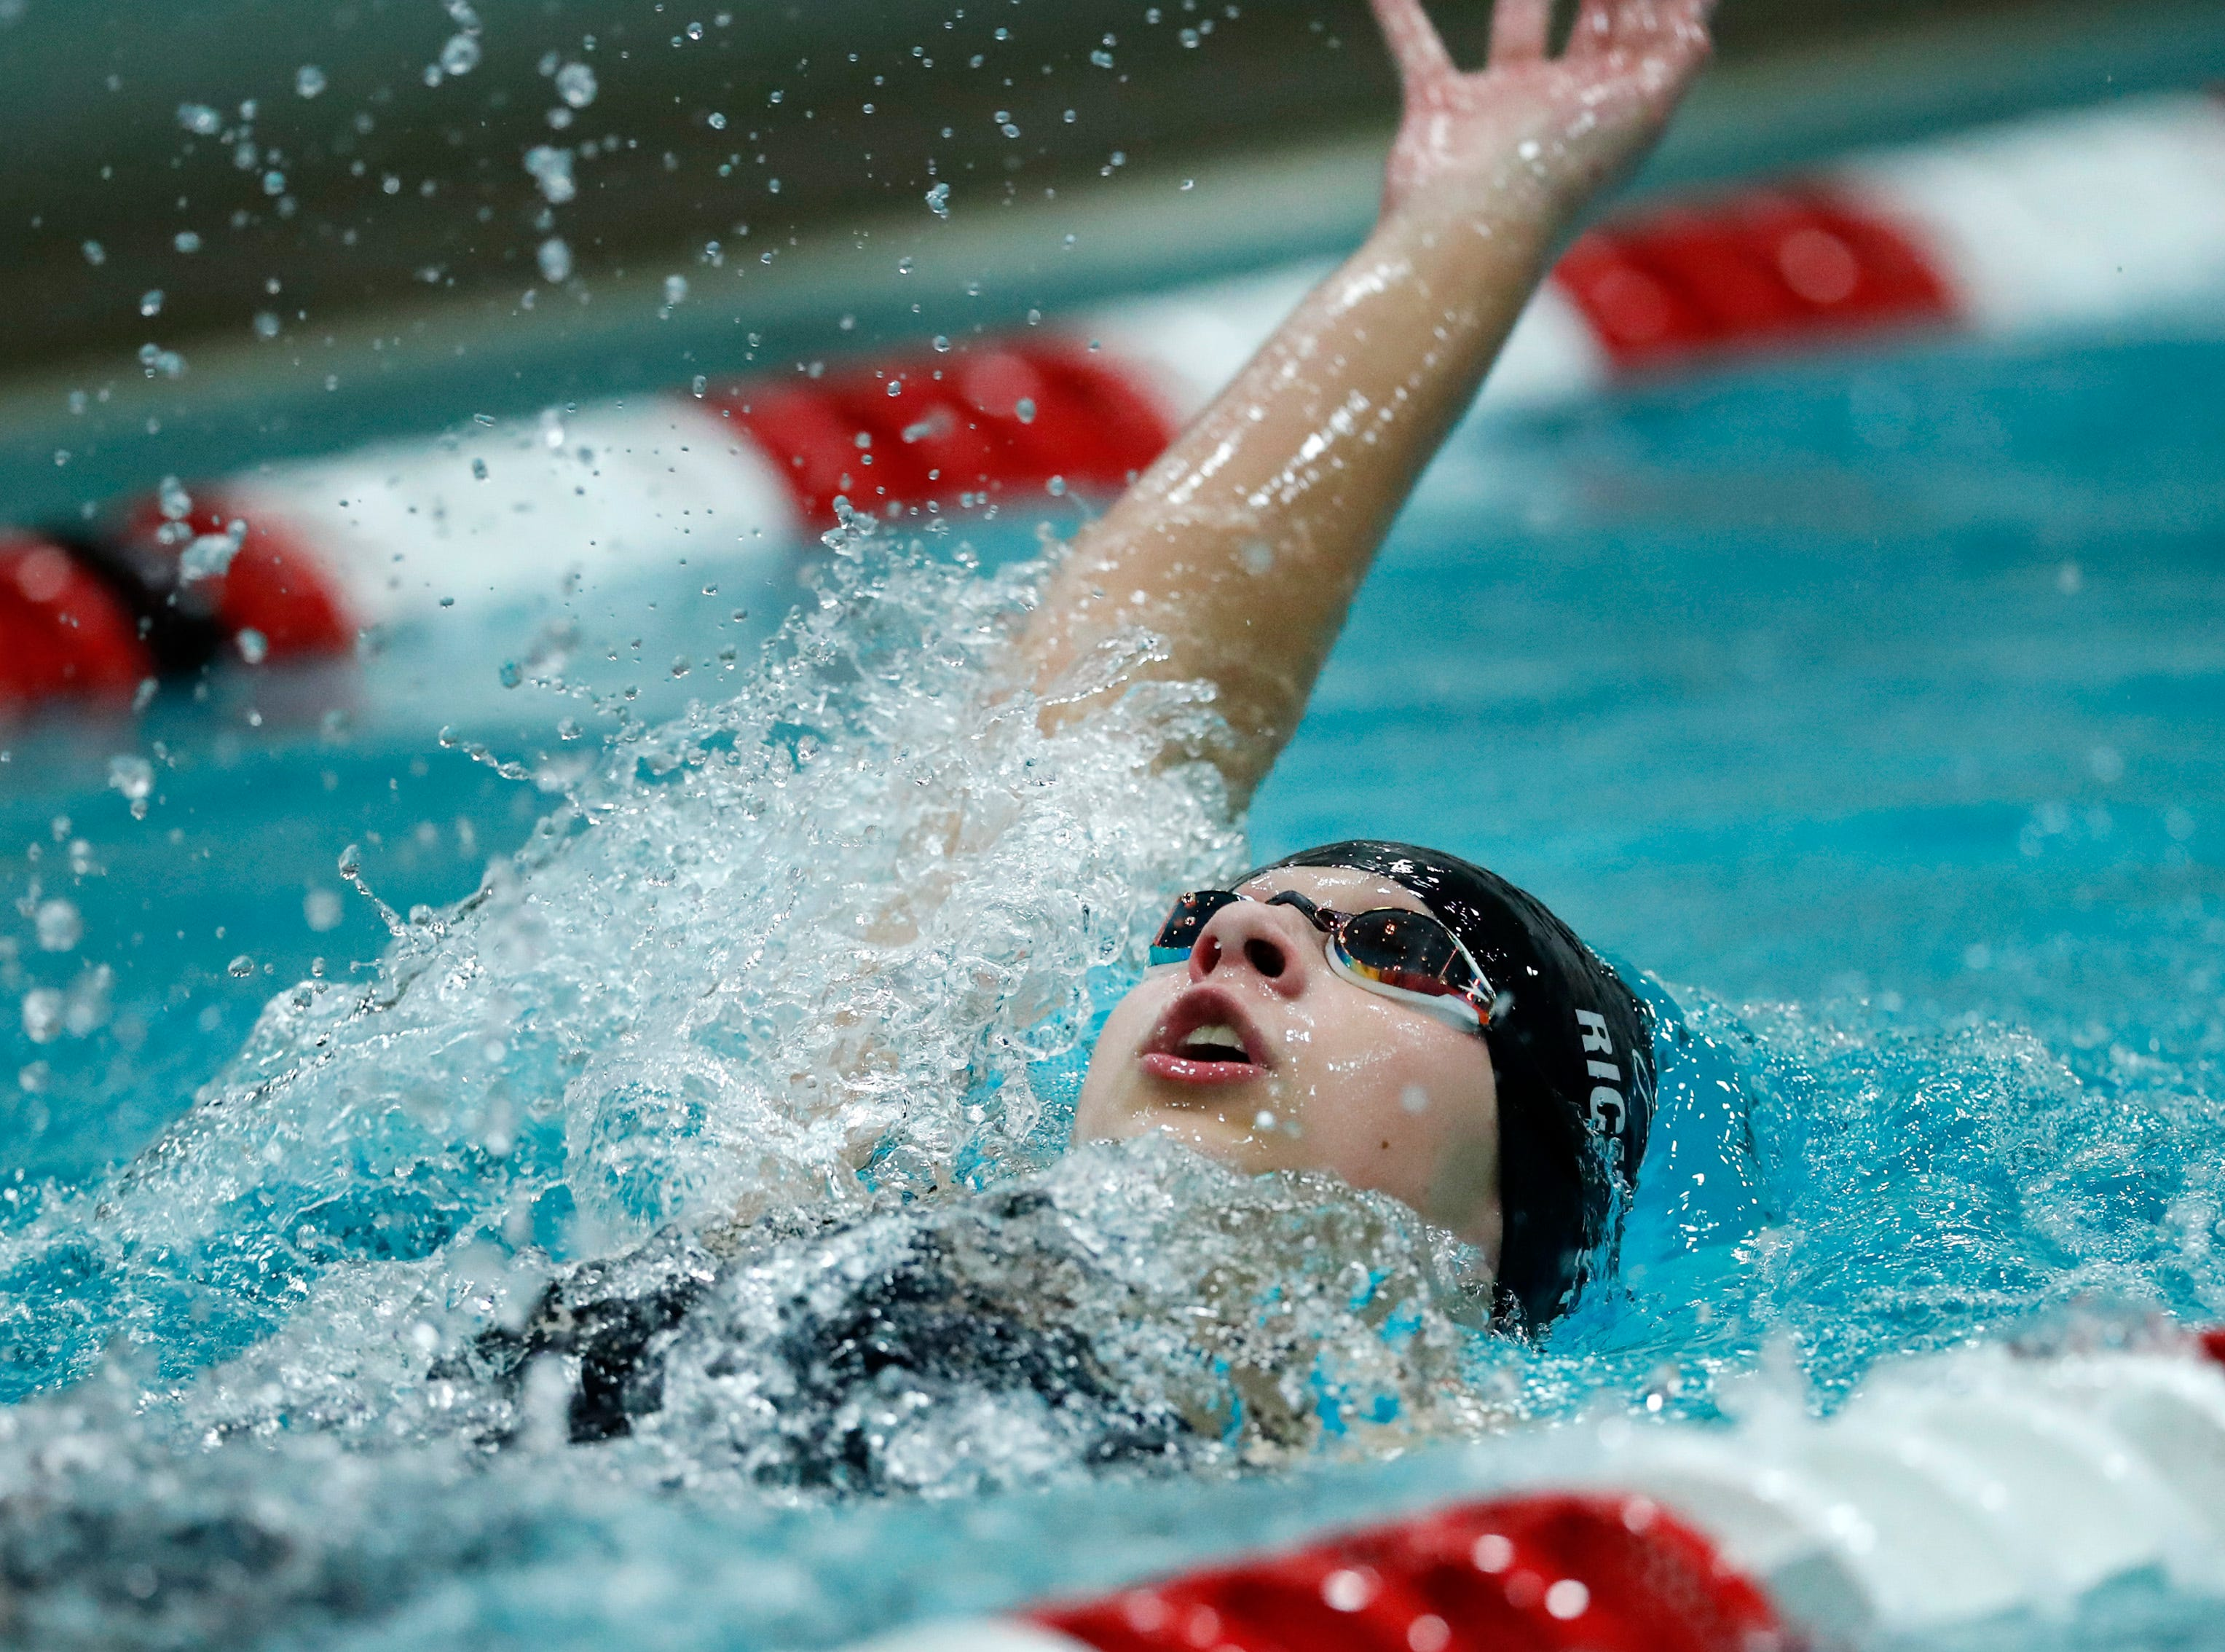 Wausau East's Olivia Richetto races in the 200 yard individual medley during the WIAA Division 2 State Swimming and Diving meet Friday, Nov. 9, 2018, at the UW Natatorium in Madison, Wis.Danny Damiani/USA TODAY NETWORK-Wisconsin